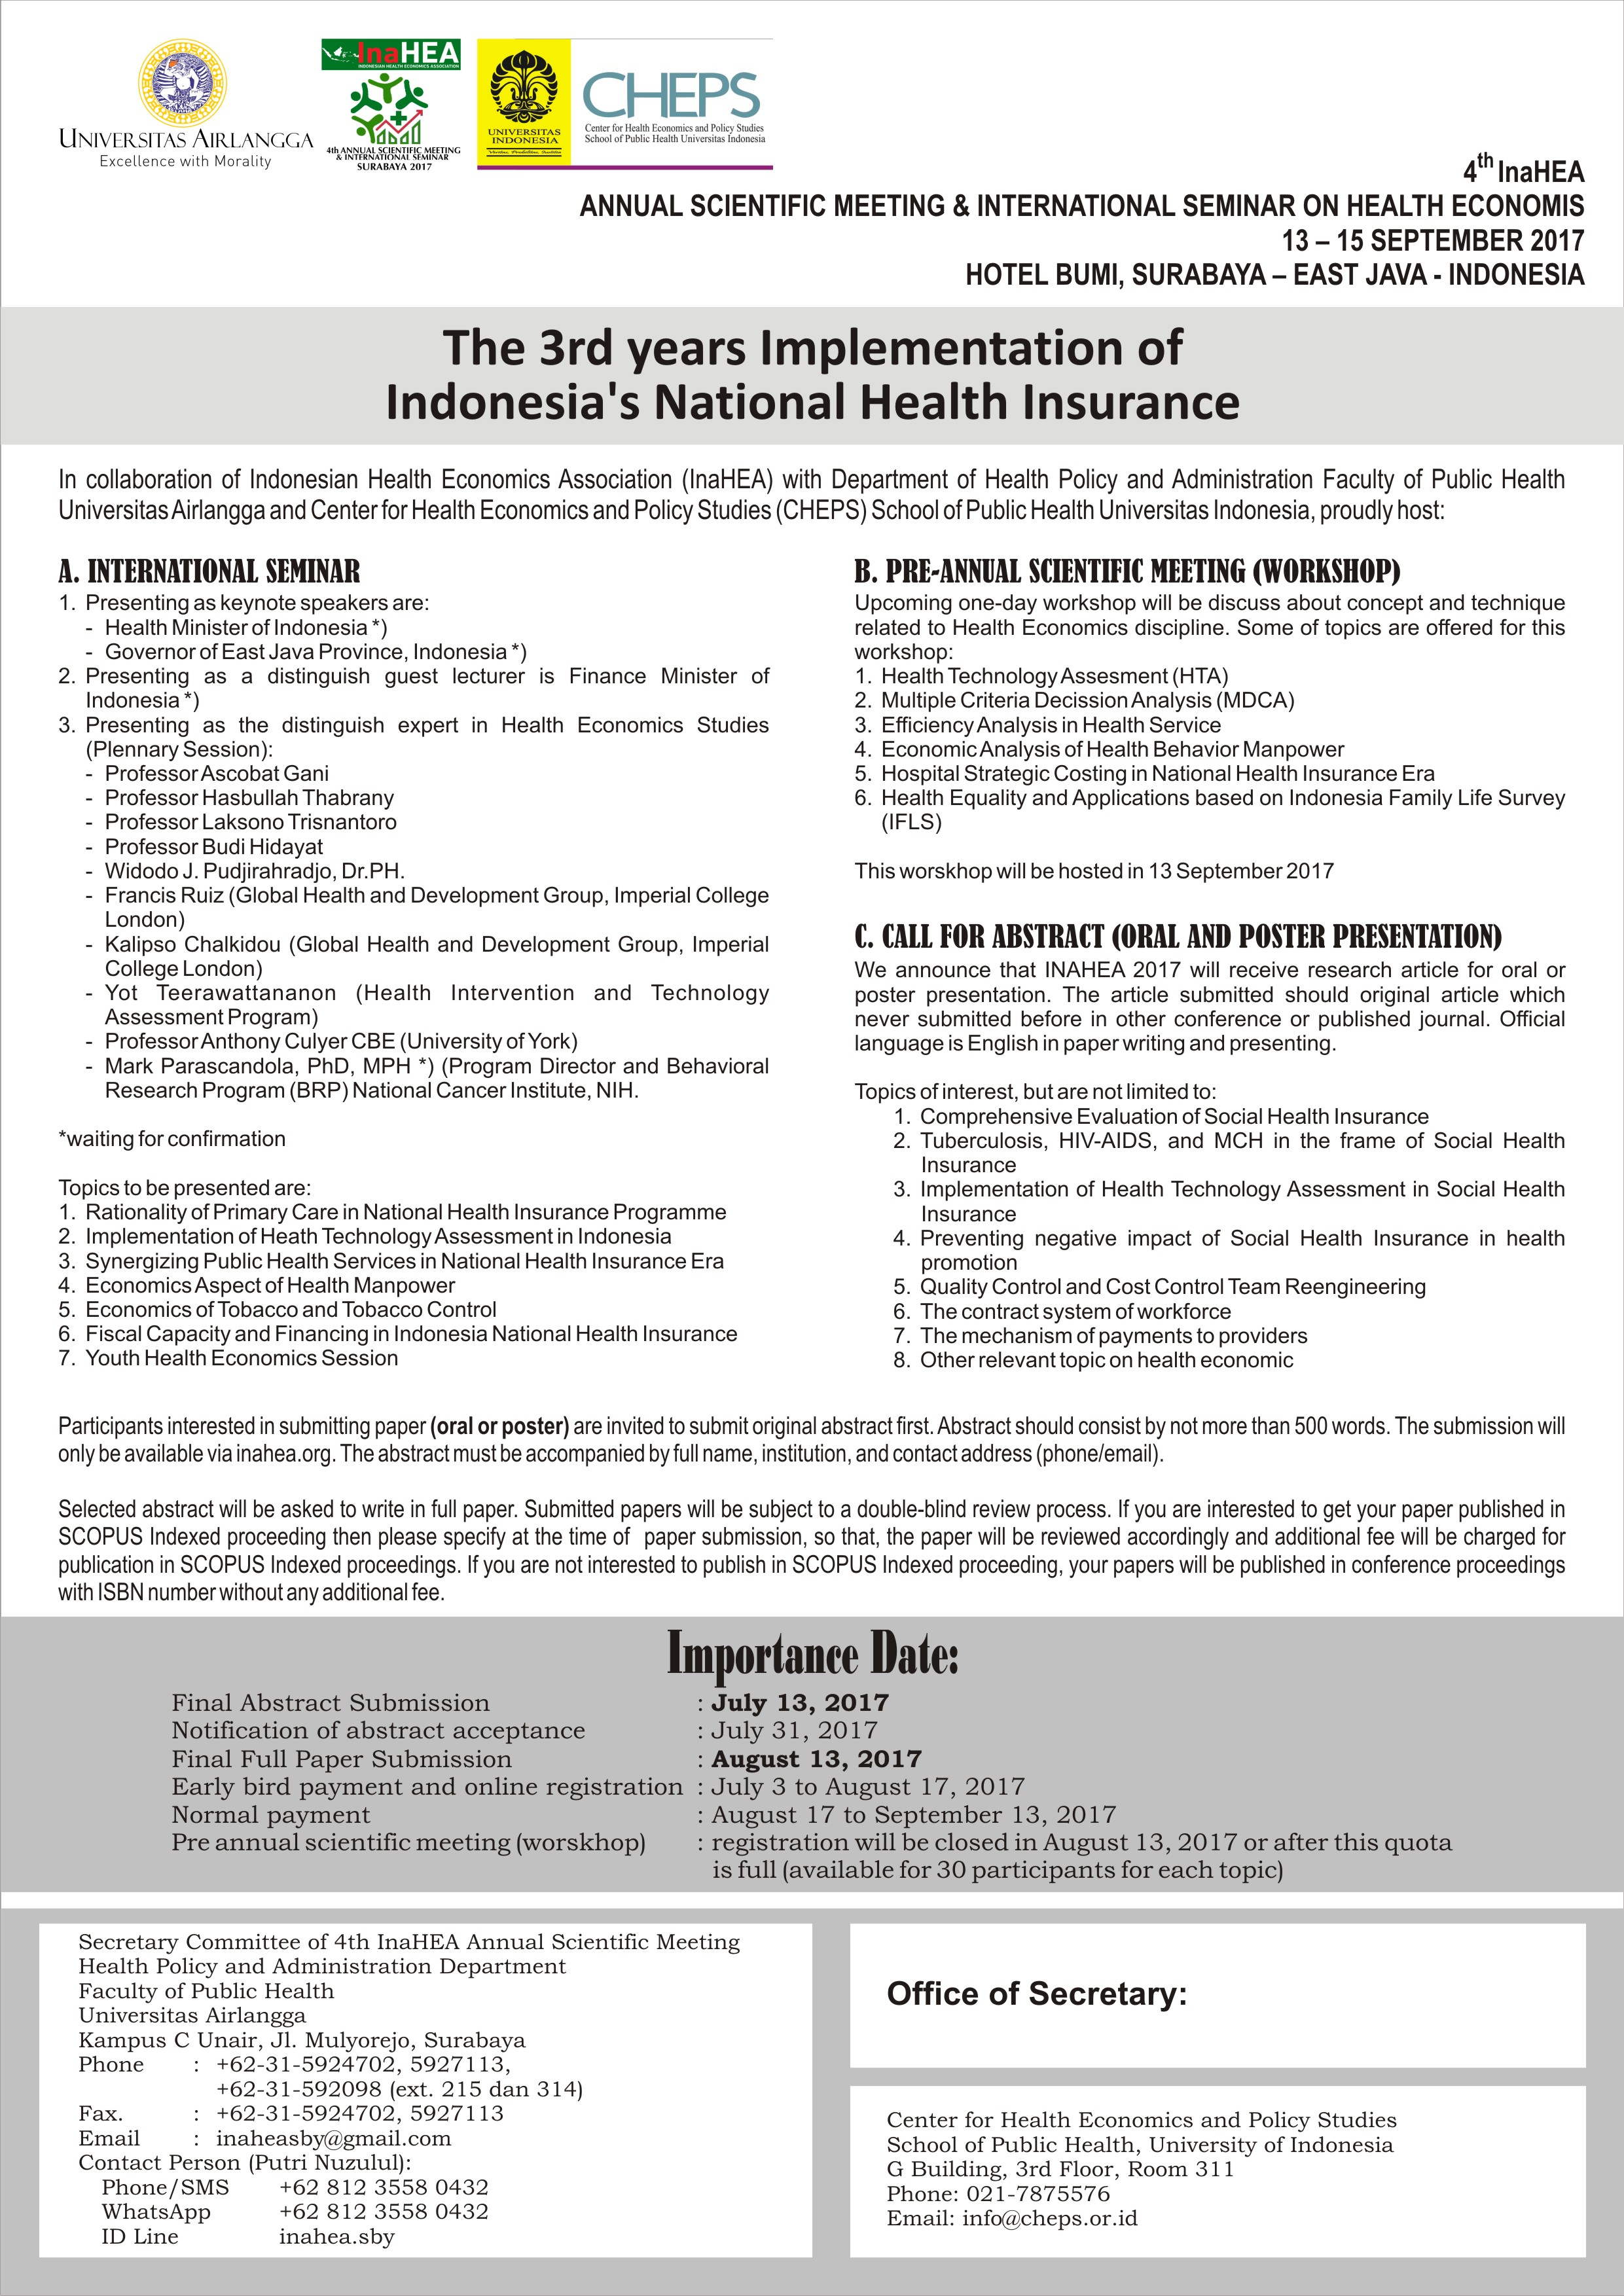 The 3rd Years Implementation Of Indonesia's National Health Insurance